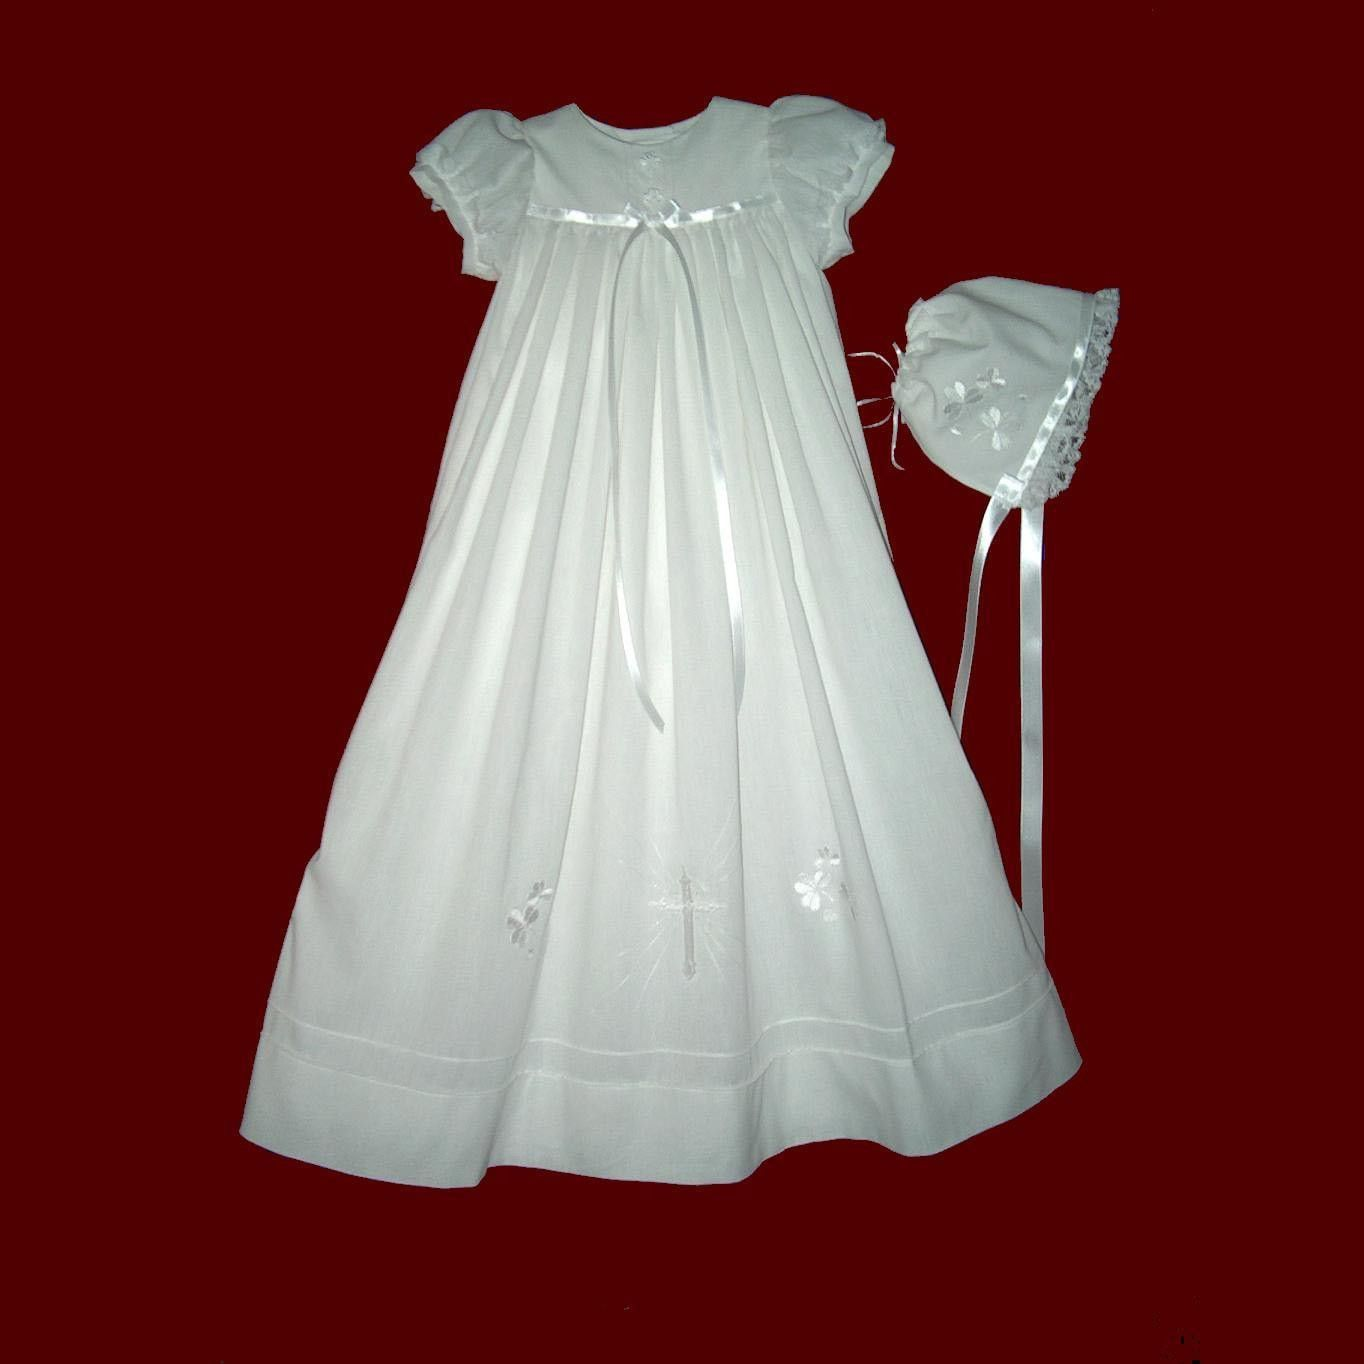 Christening Gowns From Wedding Dresses: Irish Linen Christening Gown With